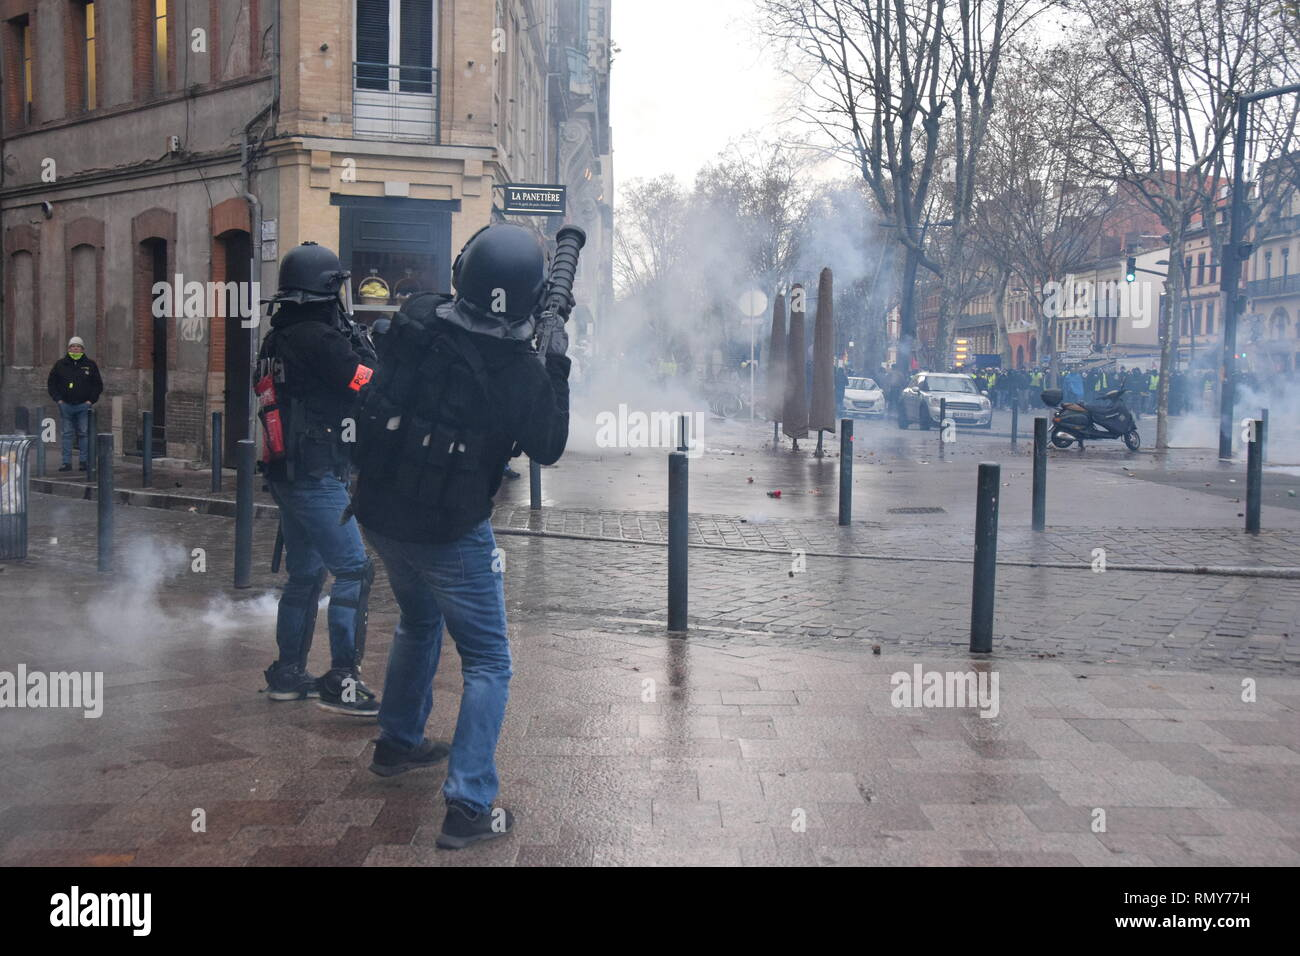 Serious clashes occured on 02/02/2019  in the streets of Toulouse, France, between riot police units and the yellow vest (gilets jaunes). - Stock Image